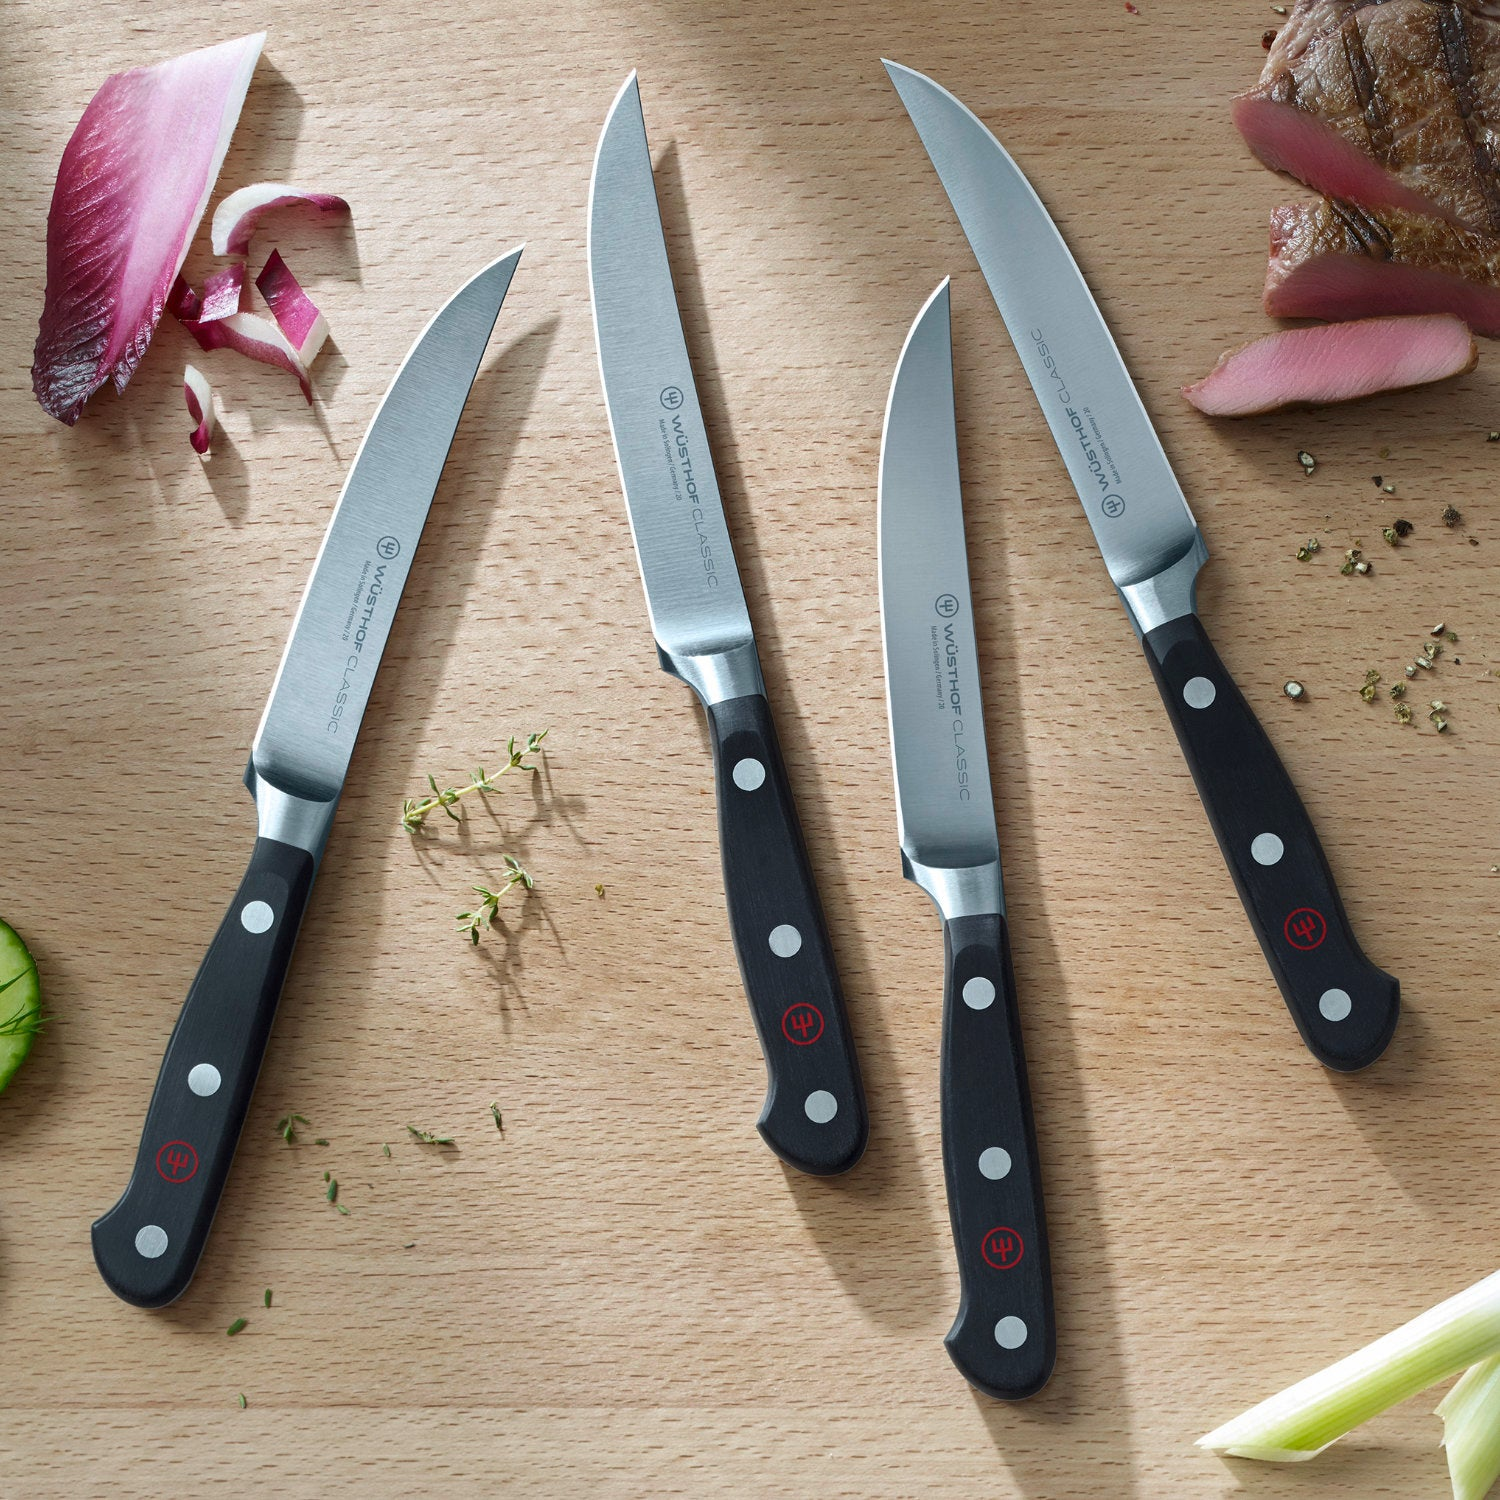 Bestselling Kitchen Knives and Tools at Swiss Knife Shop